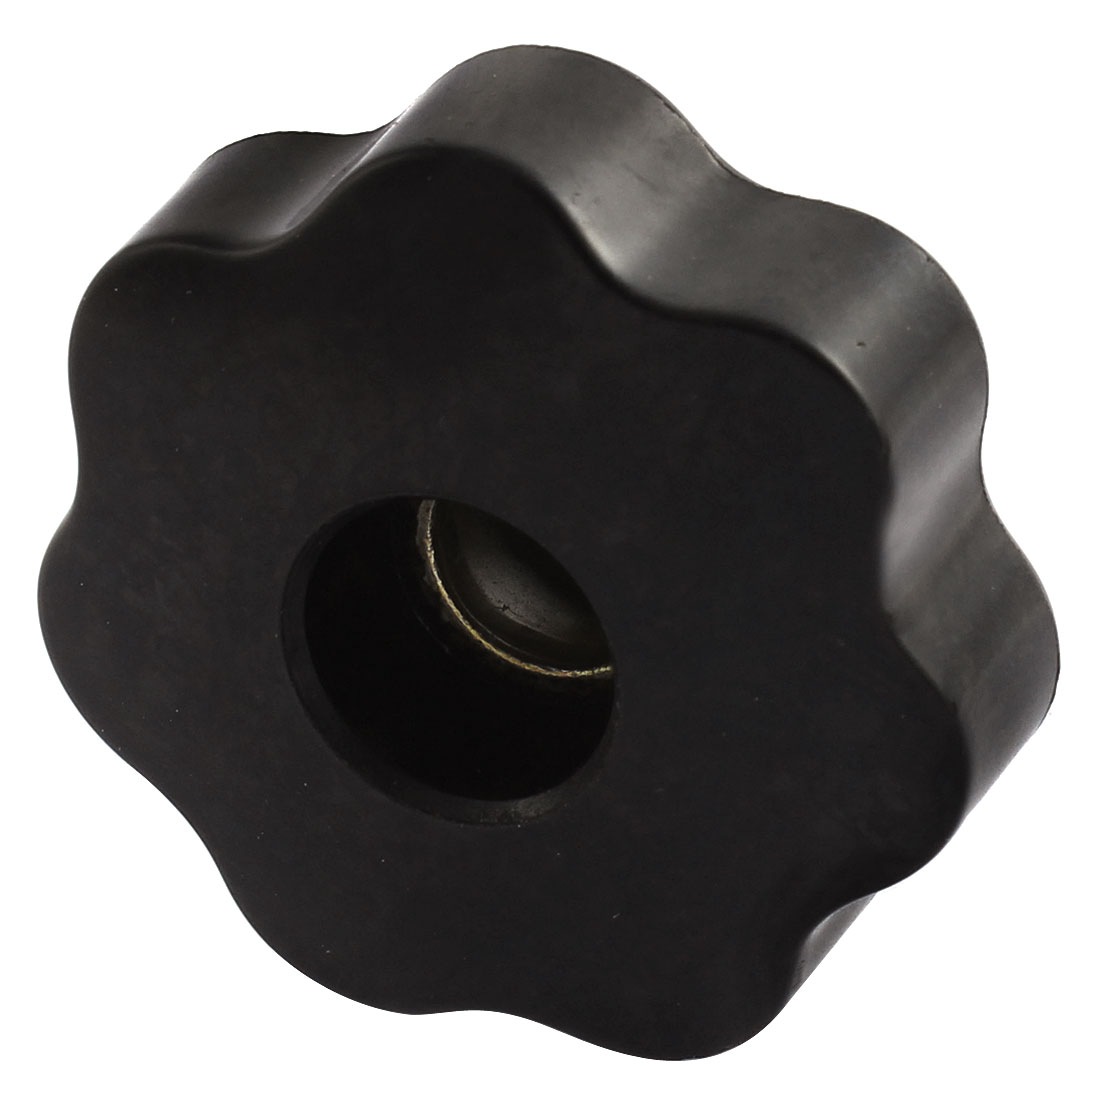 M10 Female Thread 50mm Head Diameter Star Torx Clamping Knob Black